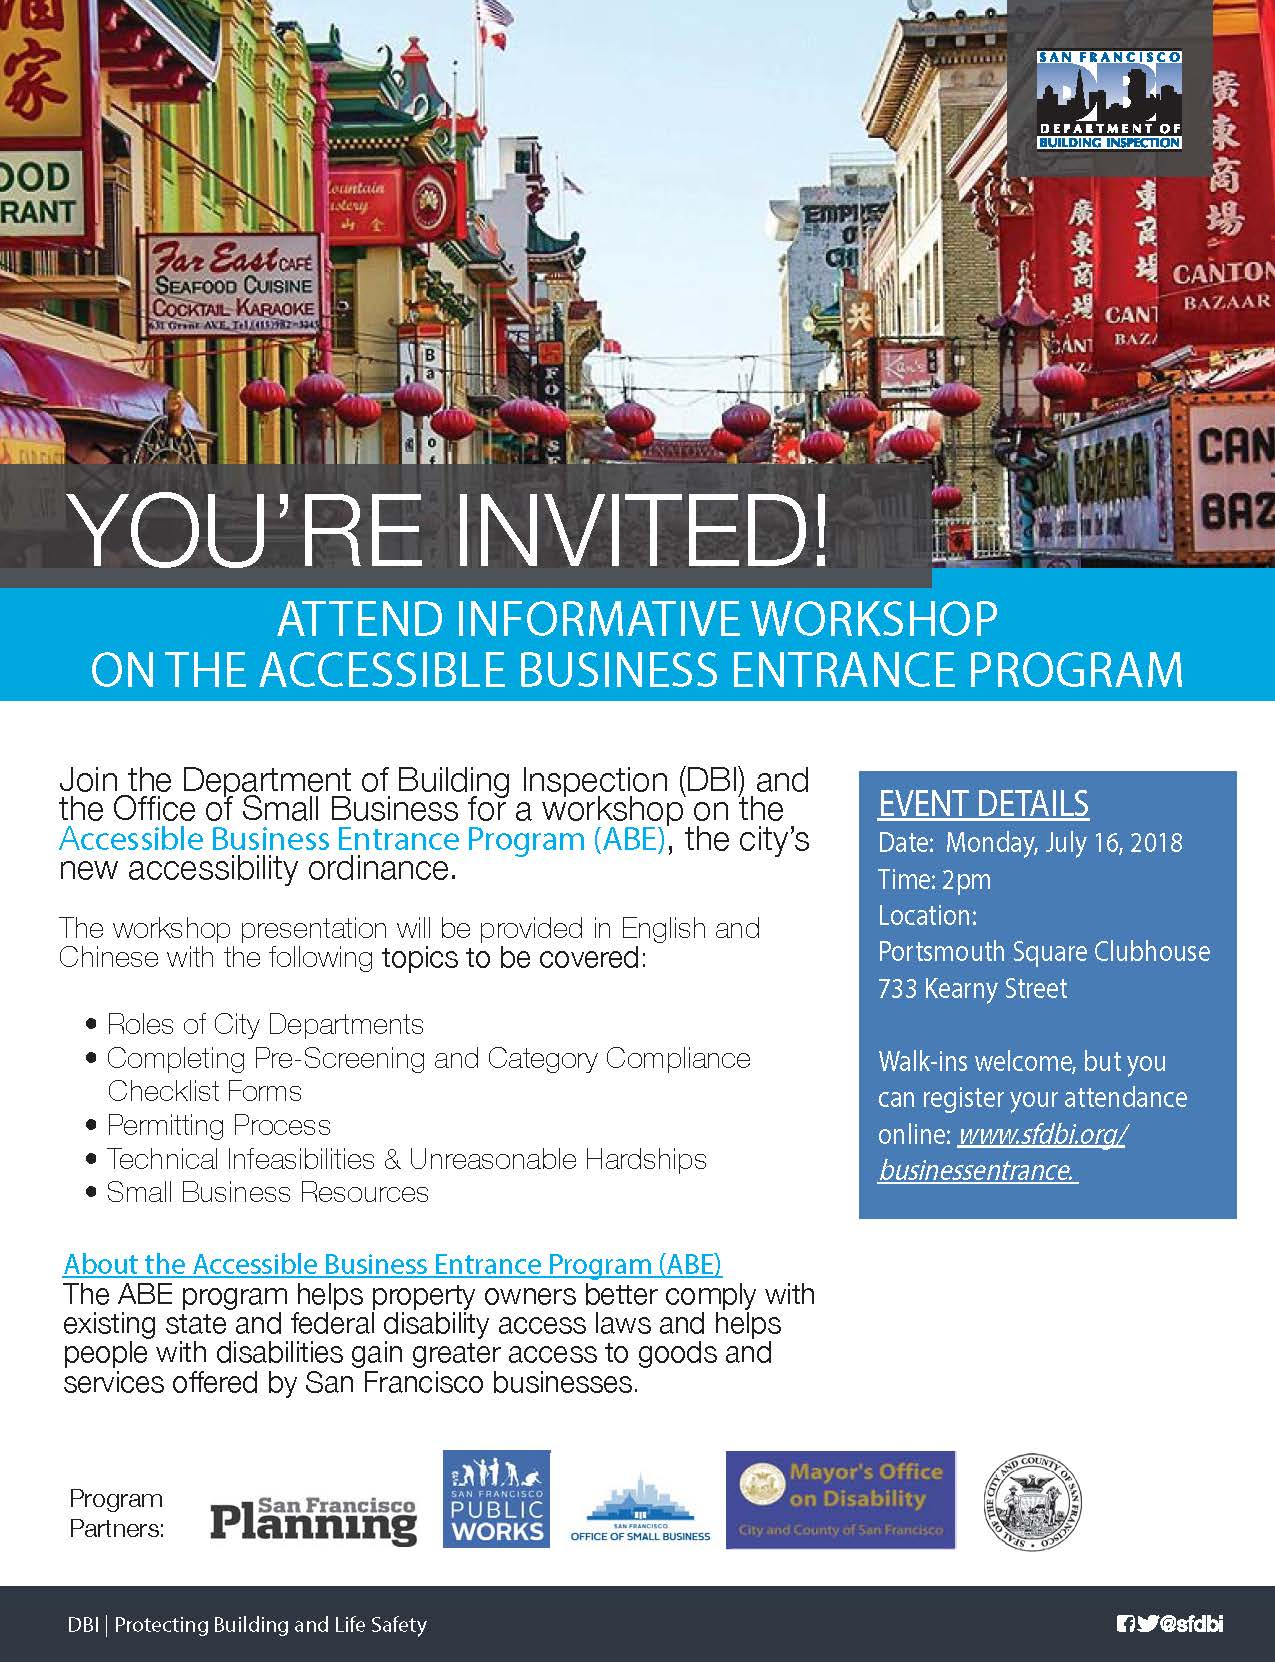 ABE Workshop in Chinatown on July 16